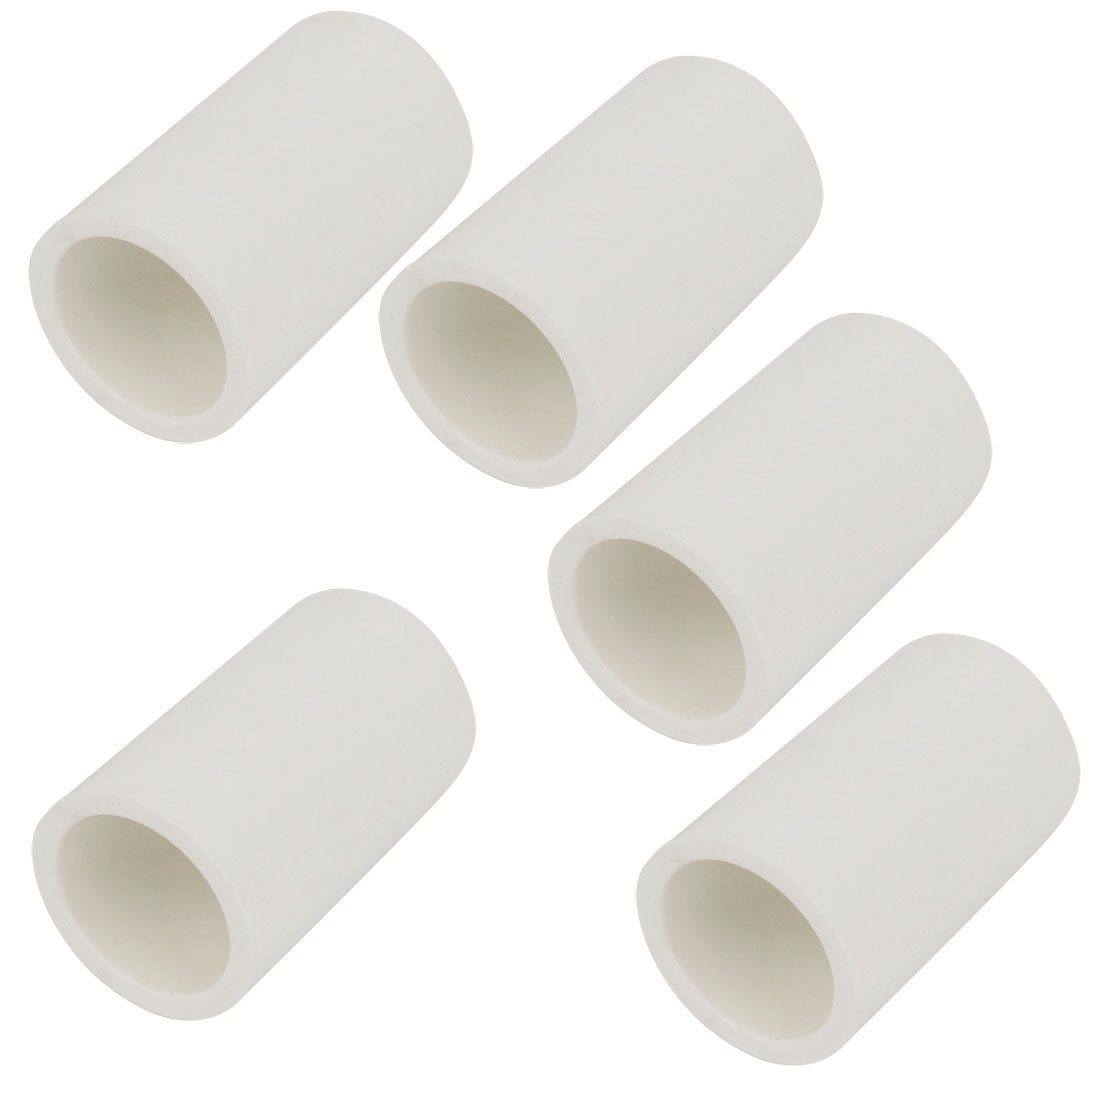 5 Pcs PVC-U 20mm Drinking Water Pipe Insider Adapter Connector White